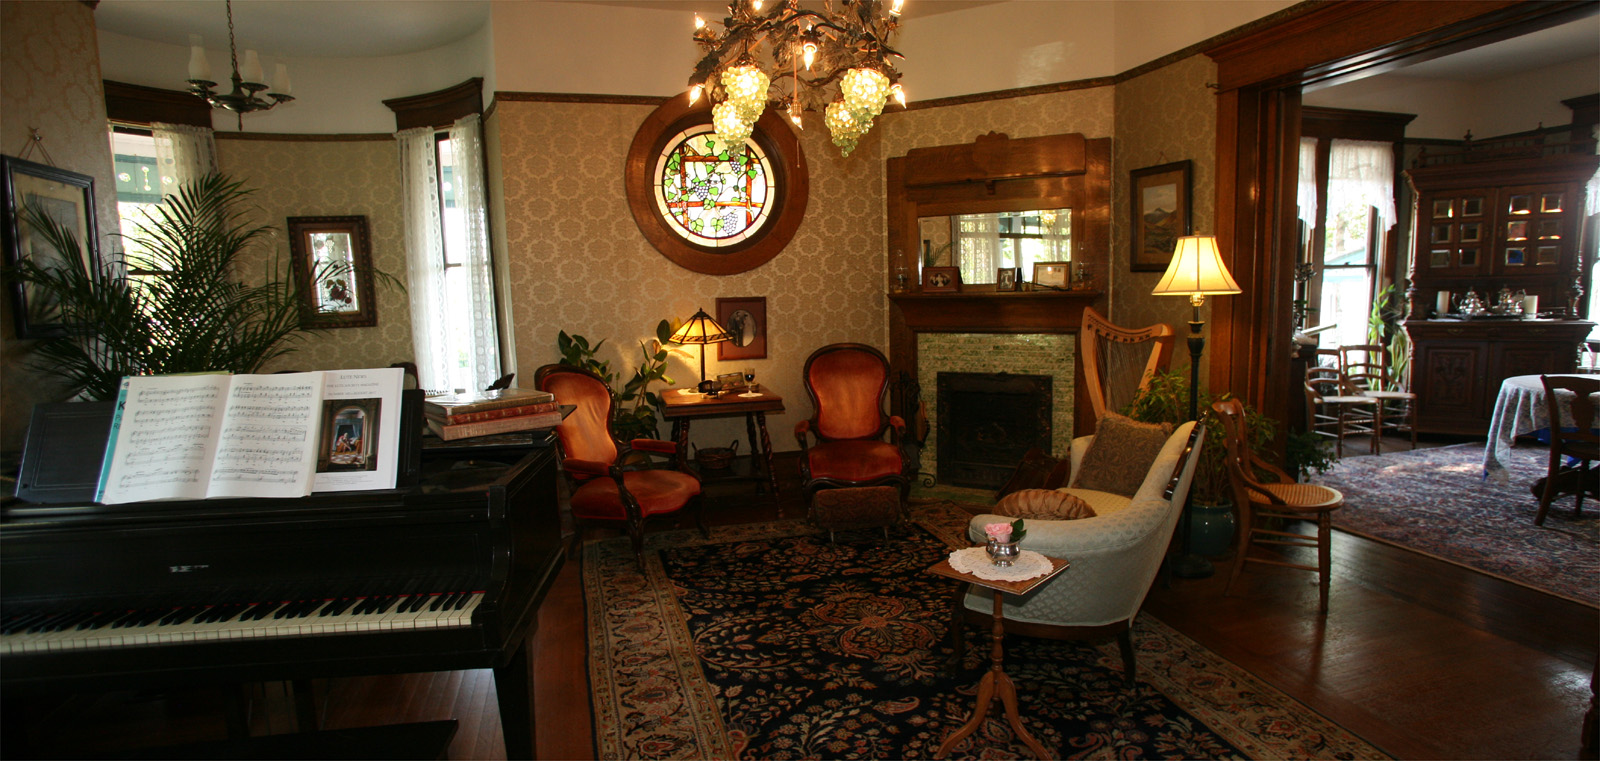 The Old Consulate Inn parlor